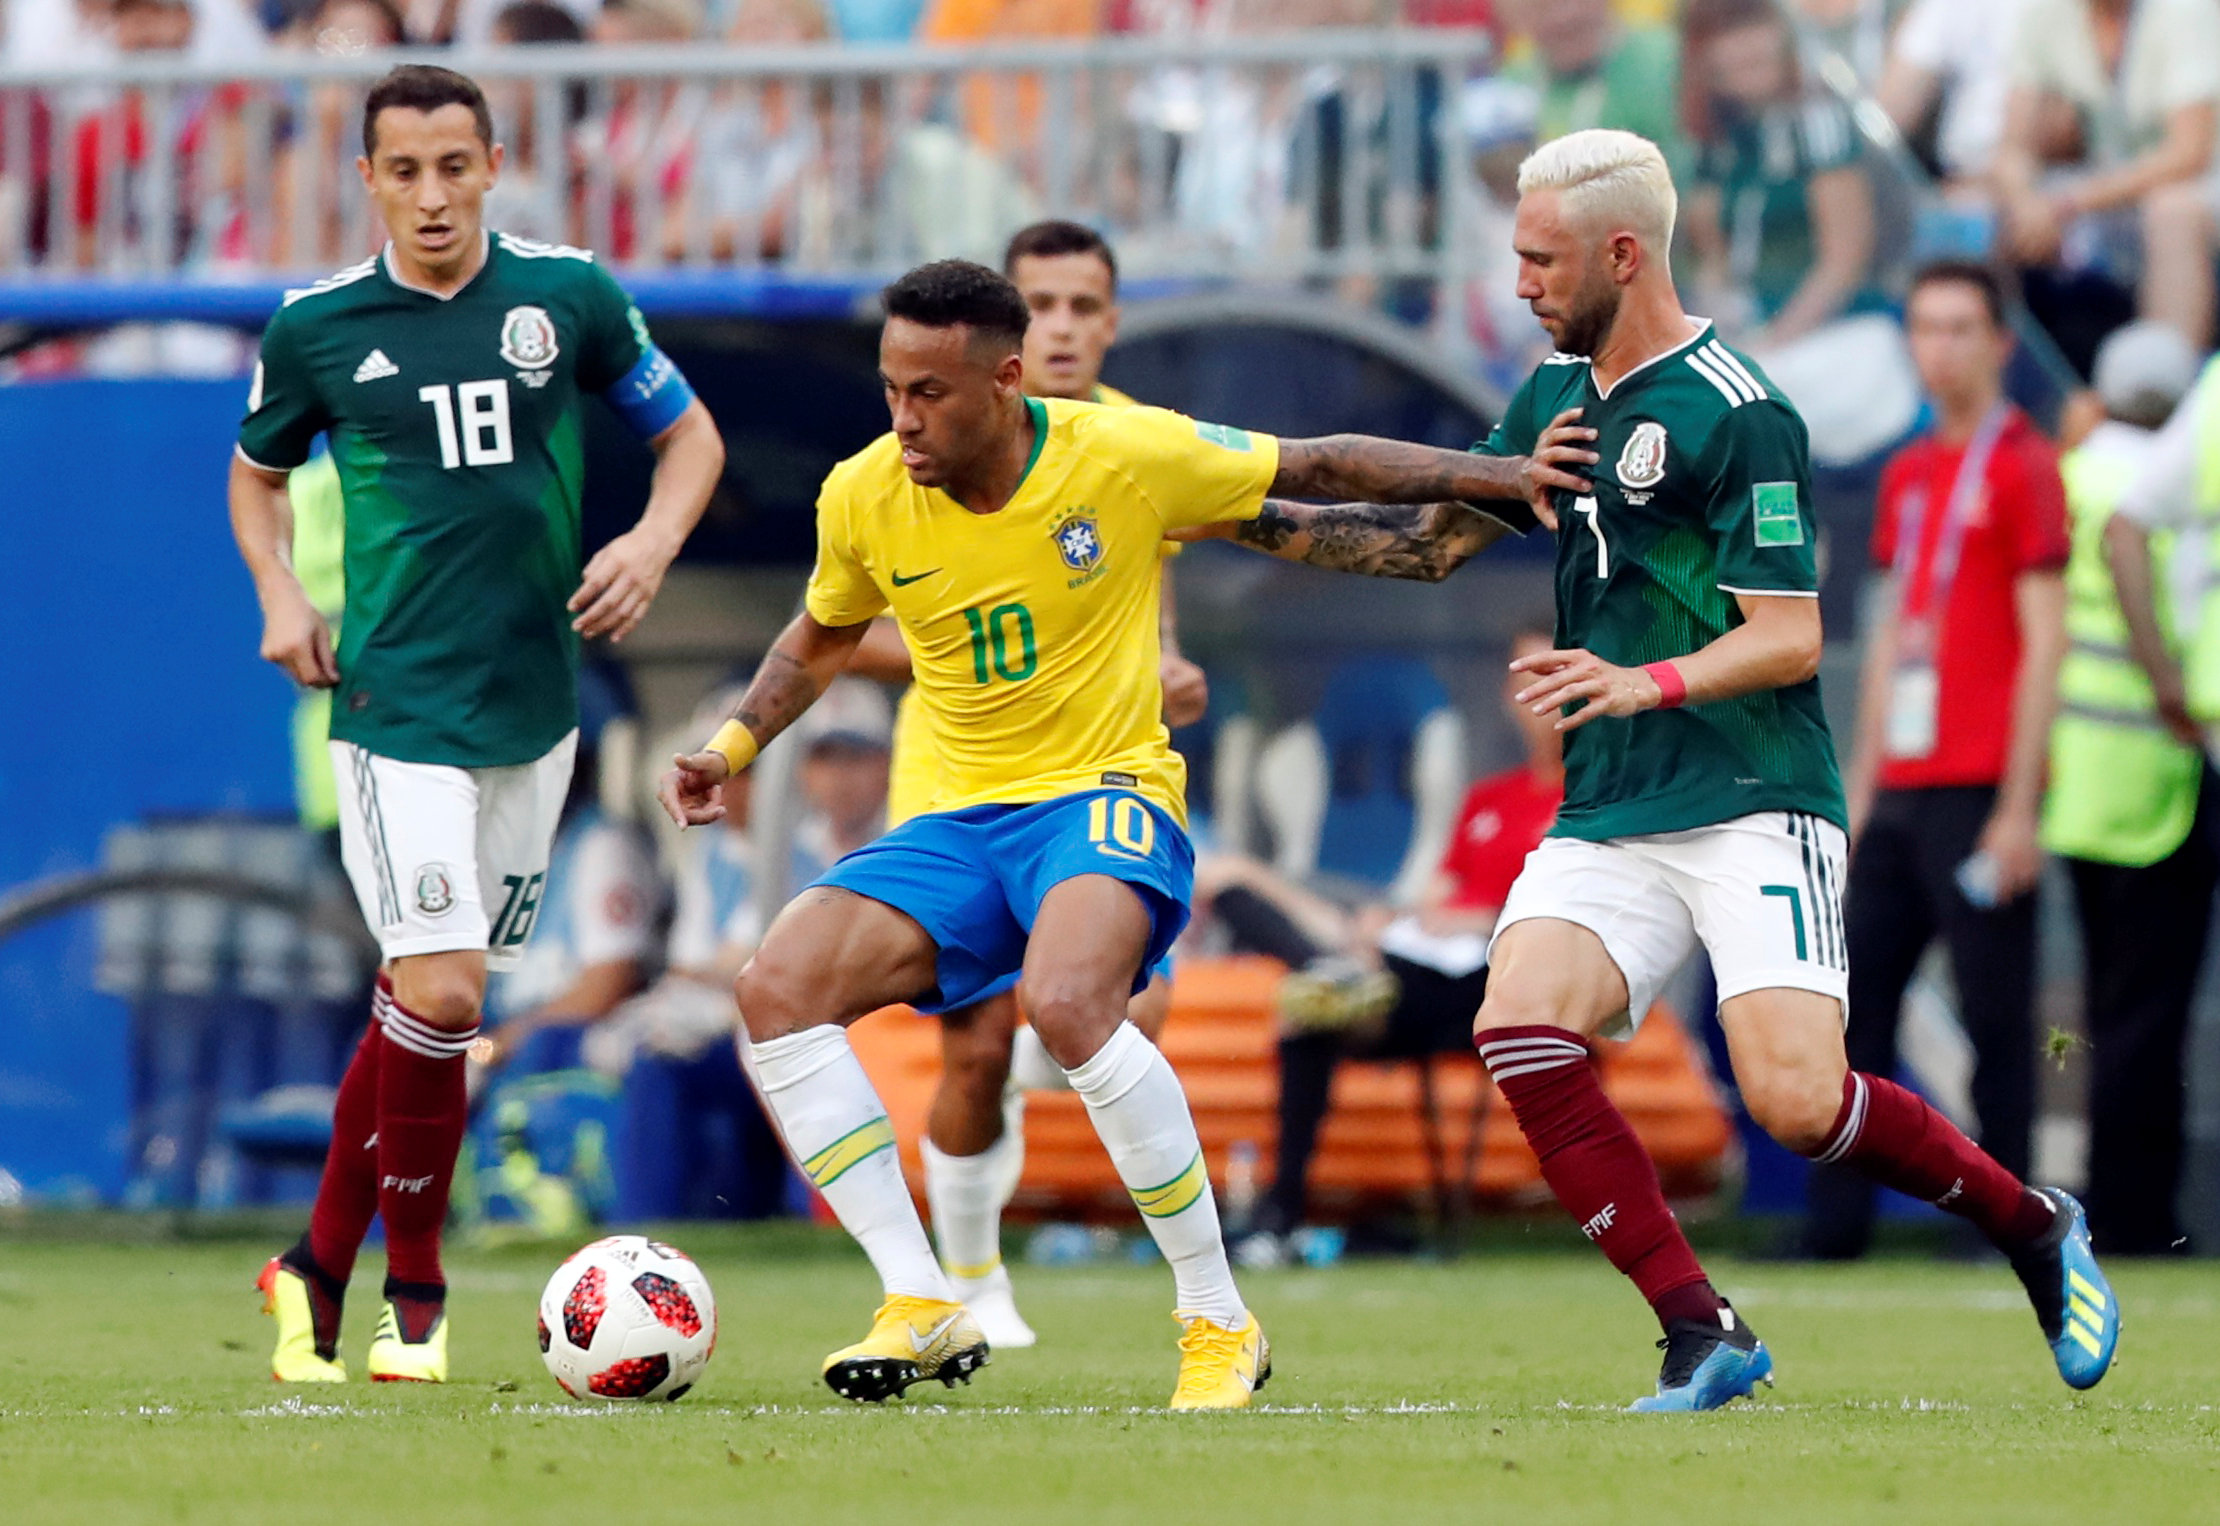 Brazil's Neymar in action with Mexico's Miguel Layun Photo:  REUTERS